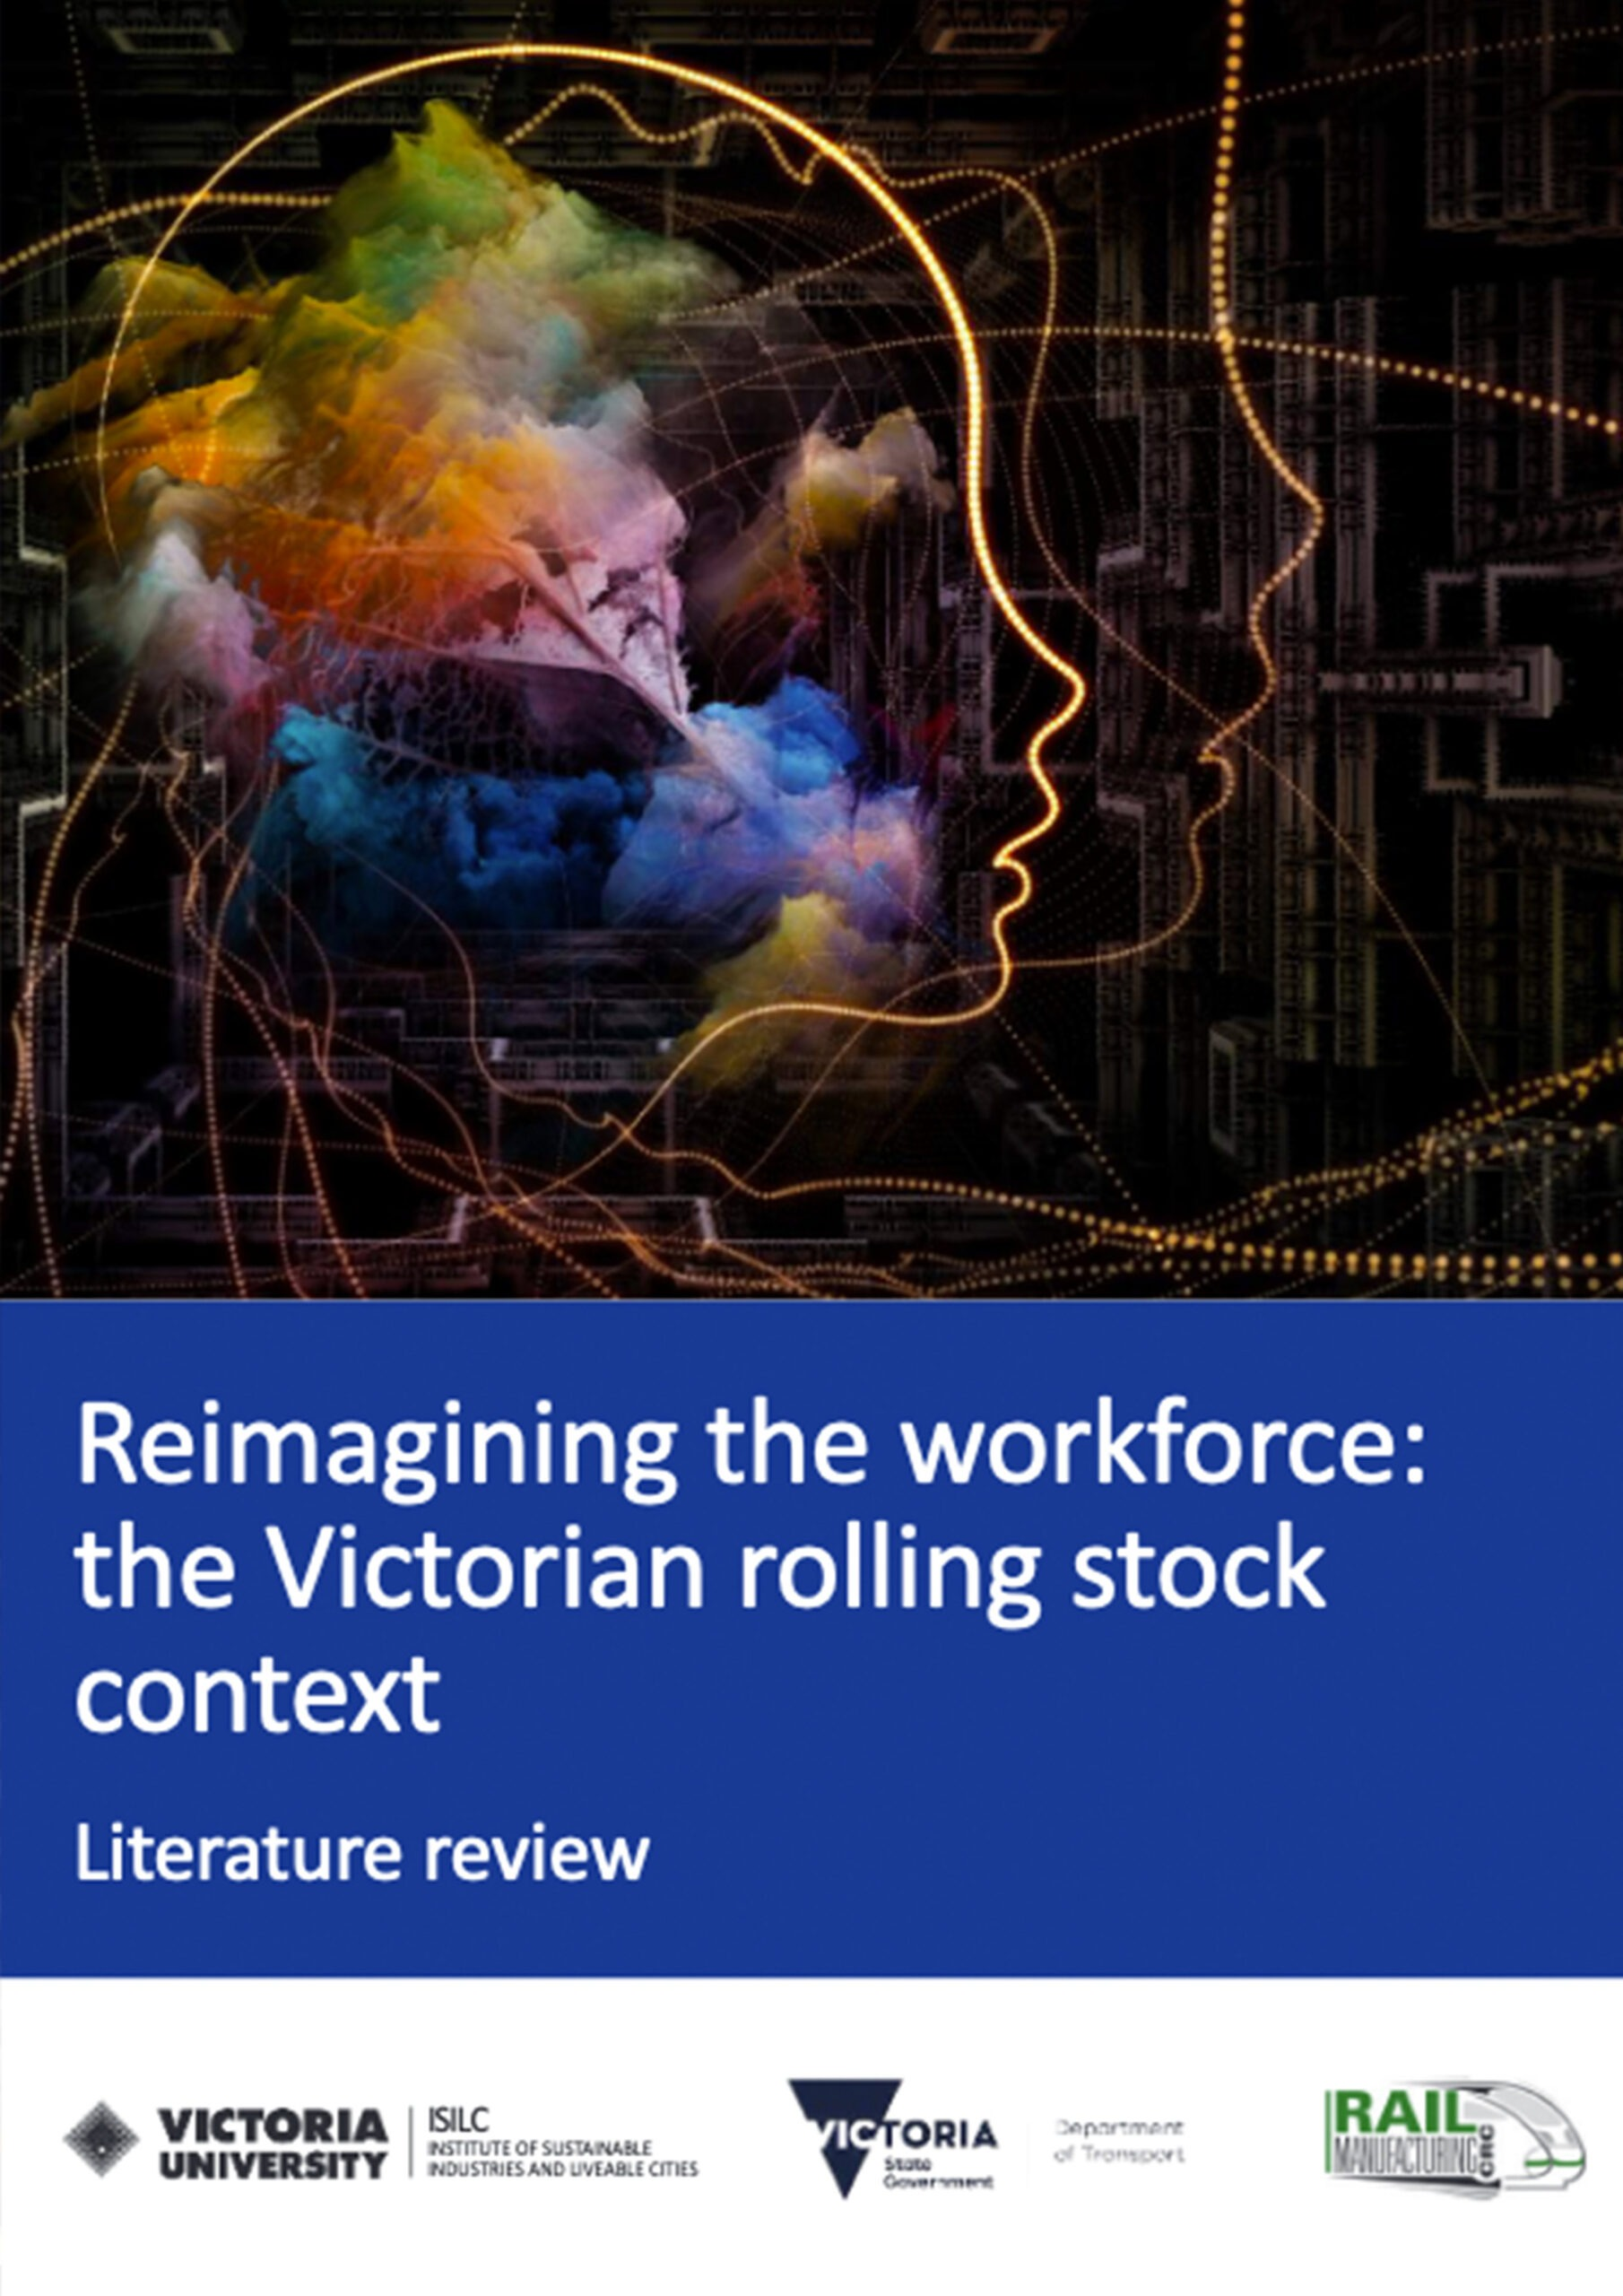 The Victorian rolling stock context